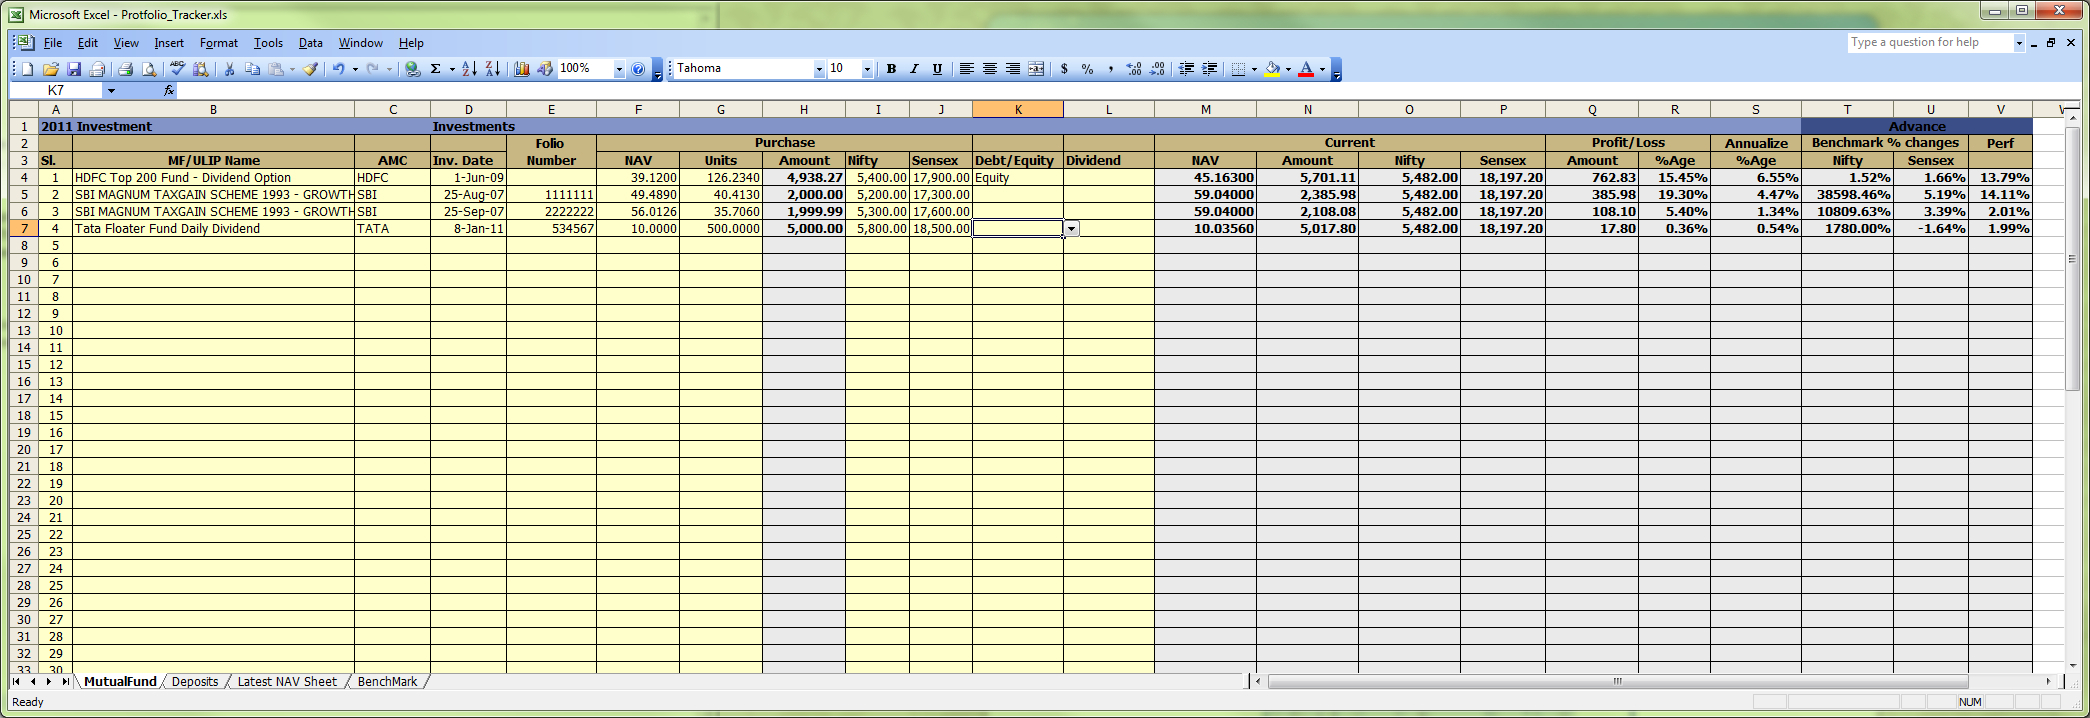 Portfolio Tracking Spreadsheet On How To Create An Excel Spreadsheet Throughout Portfolio Tracking Spreadsheet